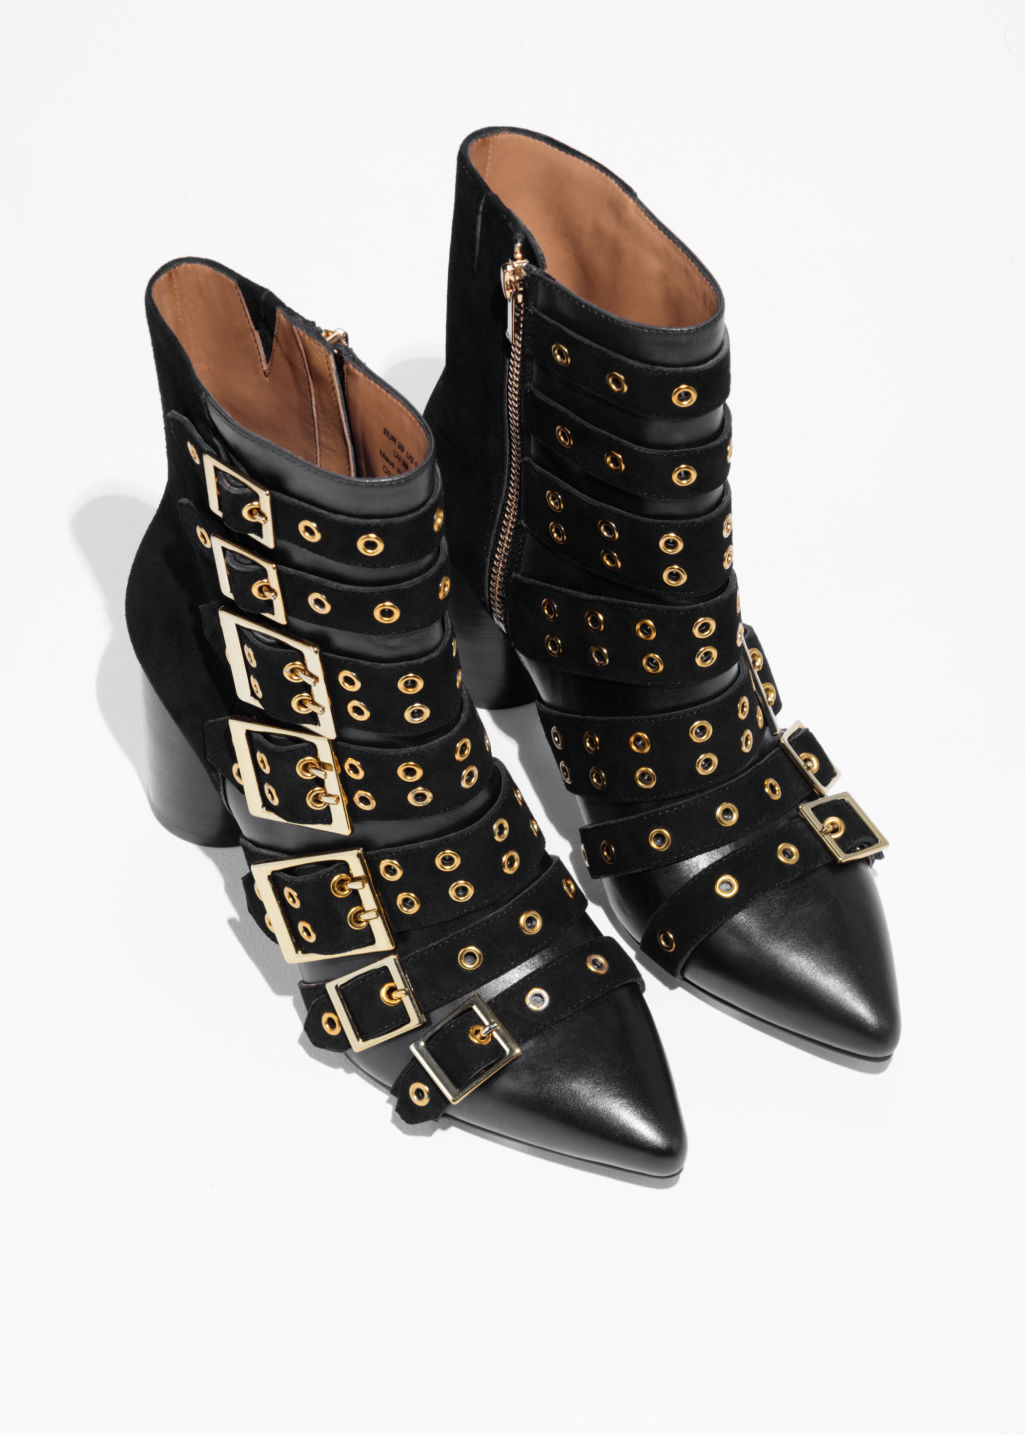 & OTHER STORIES Multi Buckle Ankle Boots Free Shipping Comfortable YuUegAY